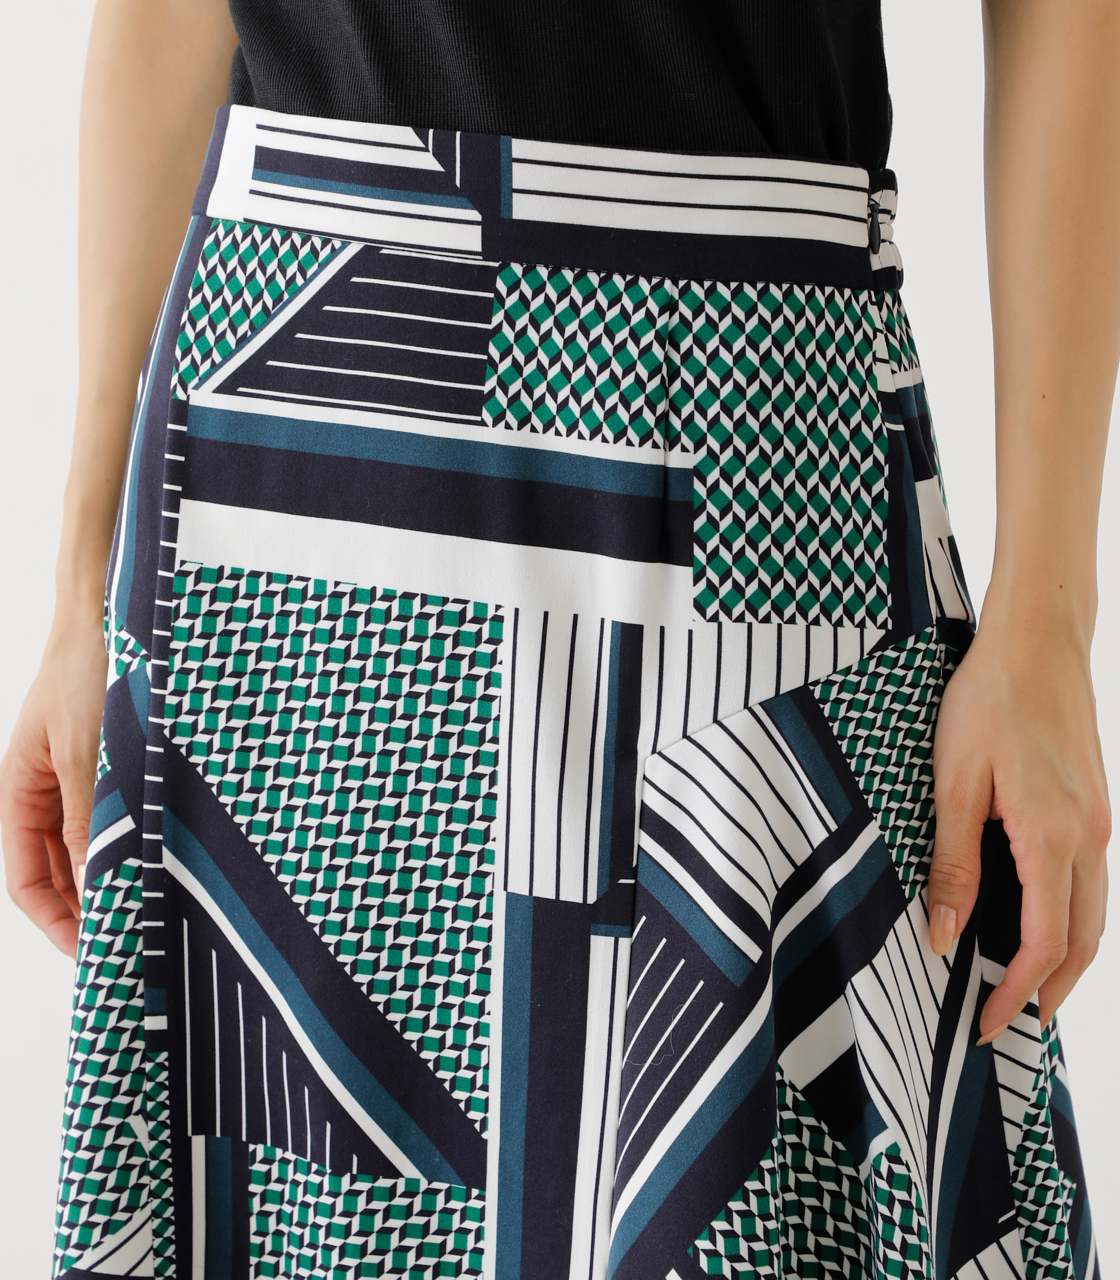 SCARF PATTERN SKIRT/スカーフパターンスカート 詳細画像 柄GRN 9